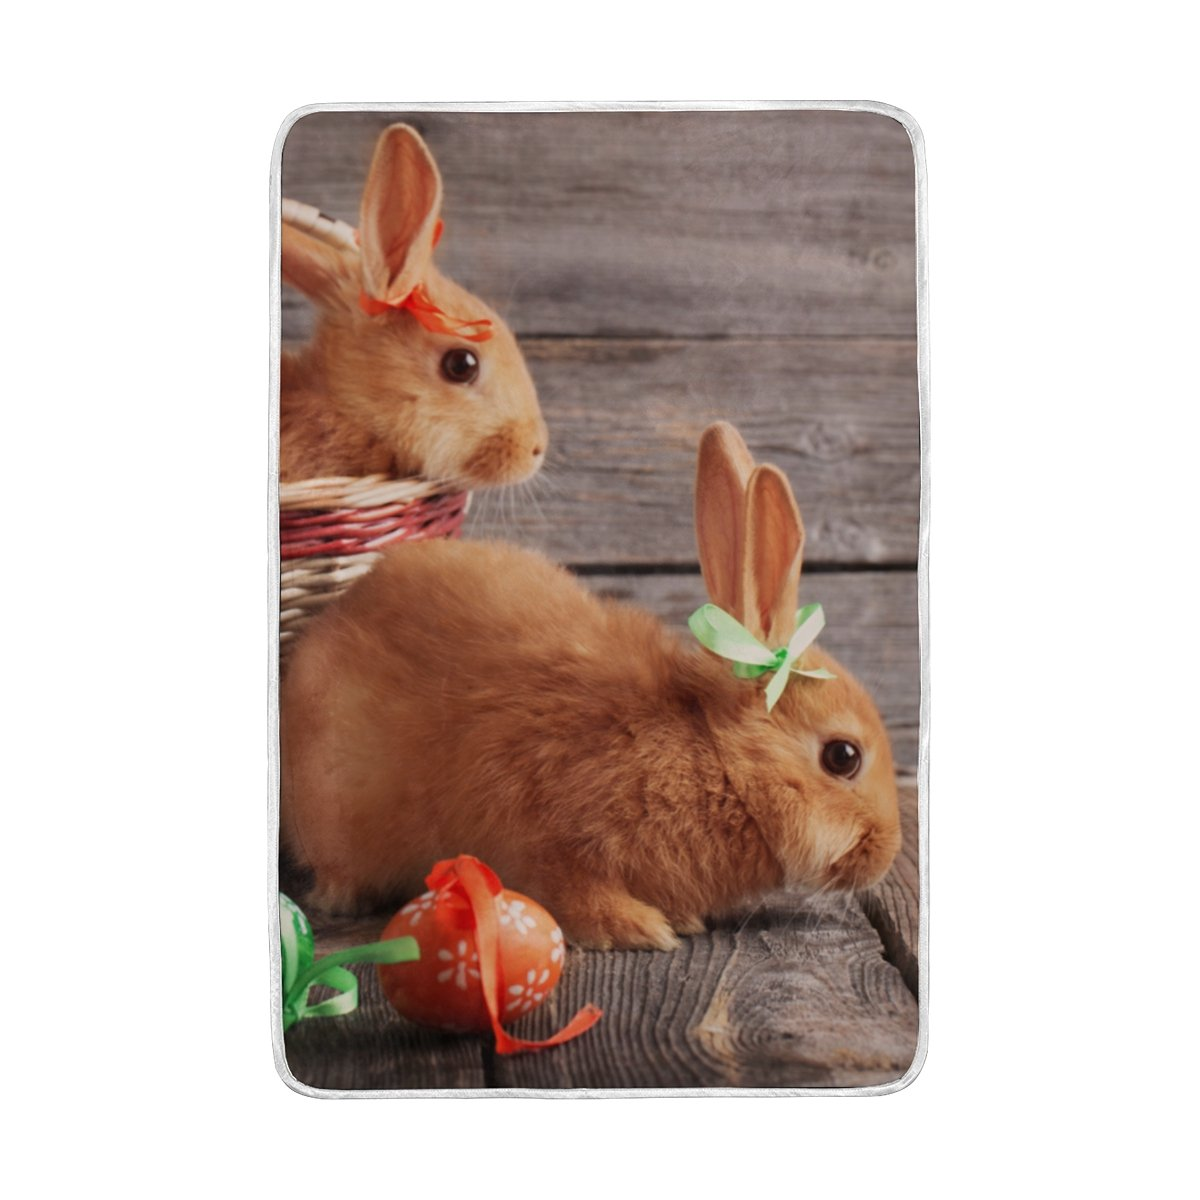 Vantaso Soft Blankets Throw Easter Egg And Bunny On Wood Board Microfiber Polyester Blankets for Bedroom Sofa Couch Living Room for Kids Children Girls Boys 60 x 90 inch